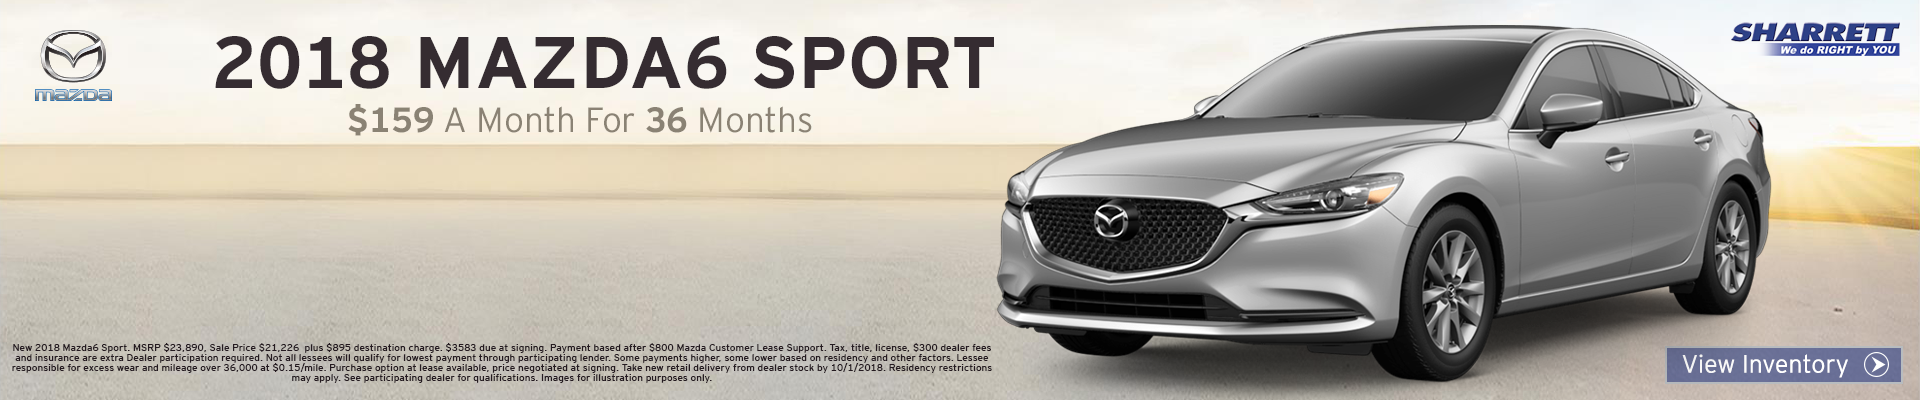 Lease a 2018 Mazda6 Sport for $159/mo for 36 months